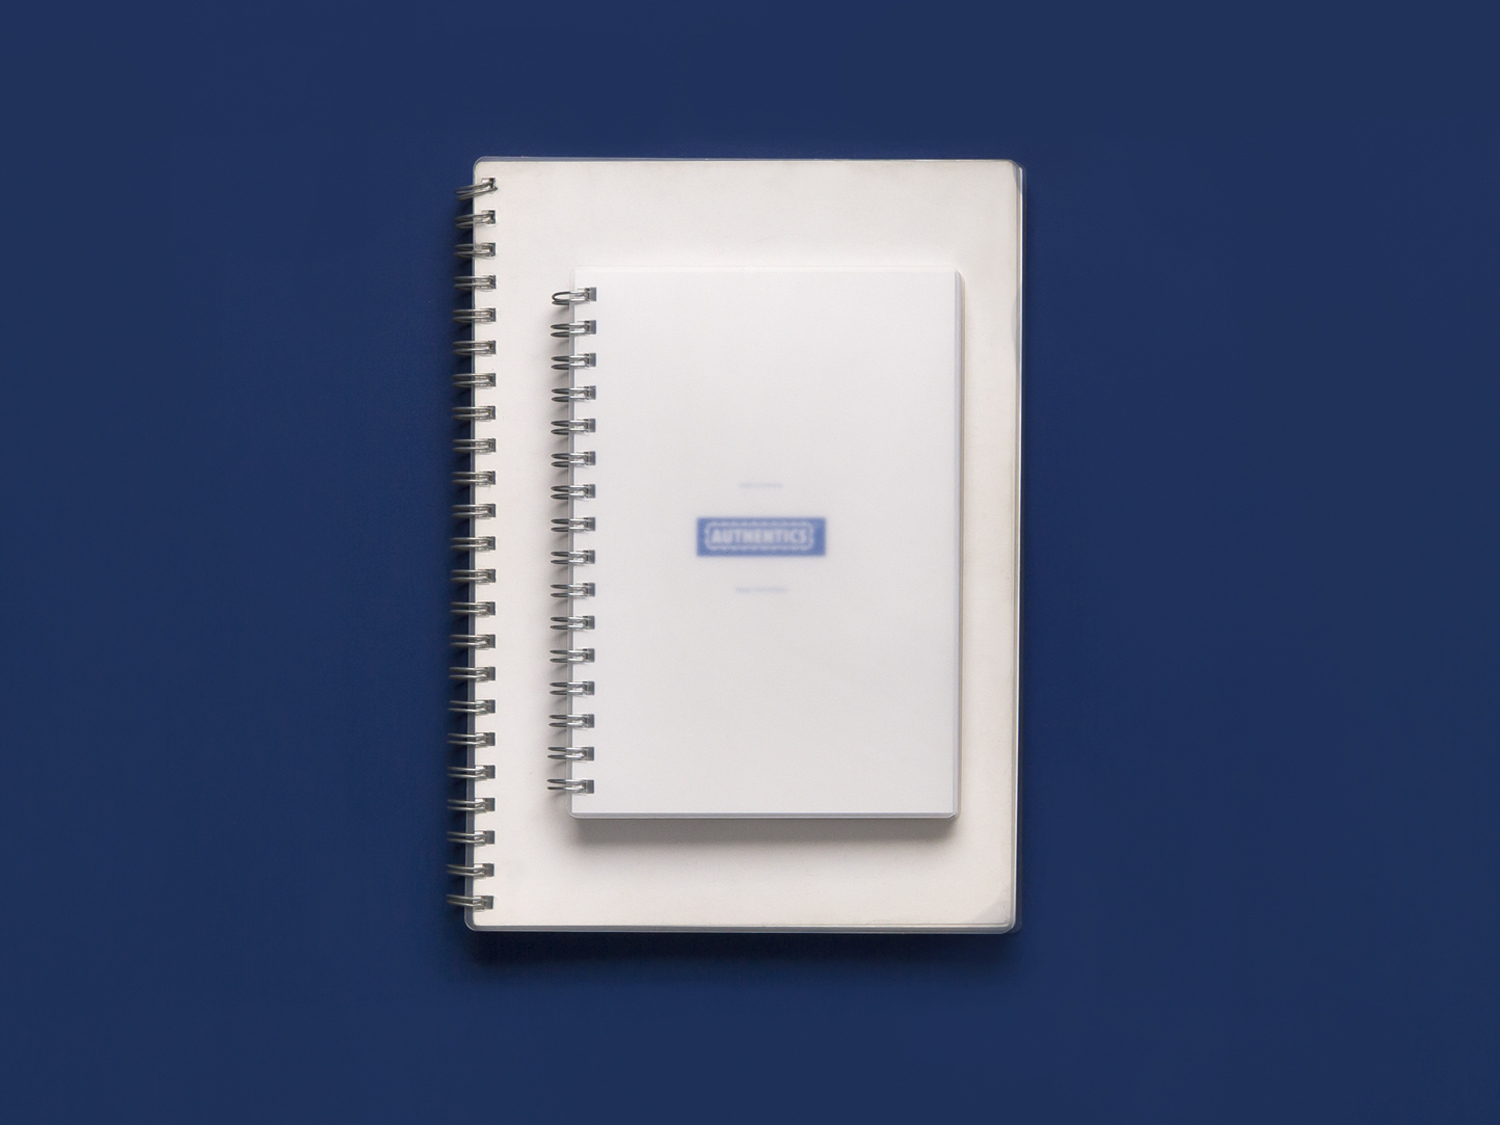 Simple Notepads. Spiral bound notepads. Designed for Authentics